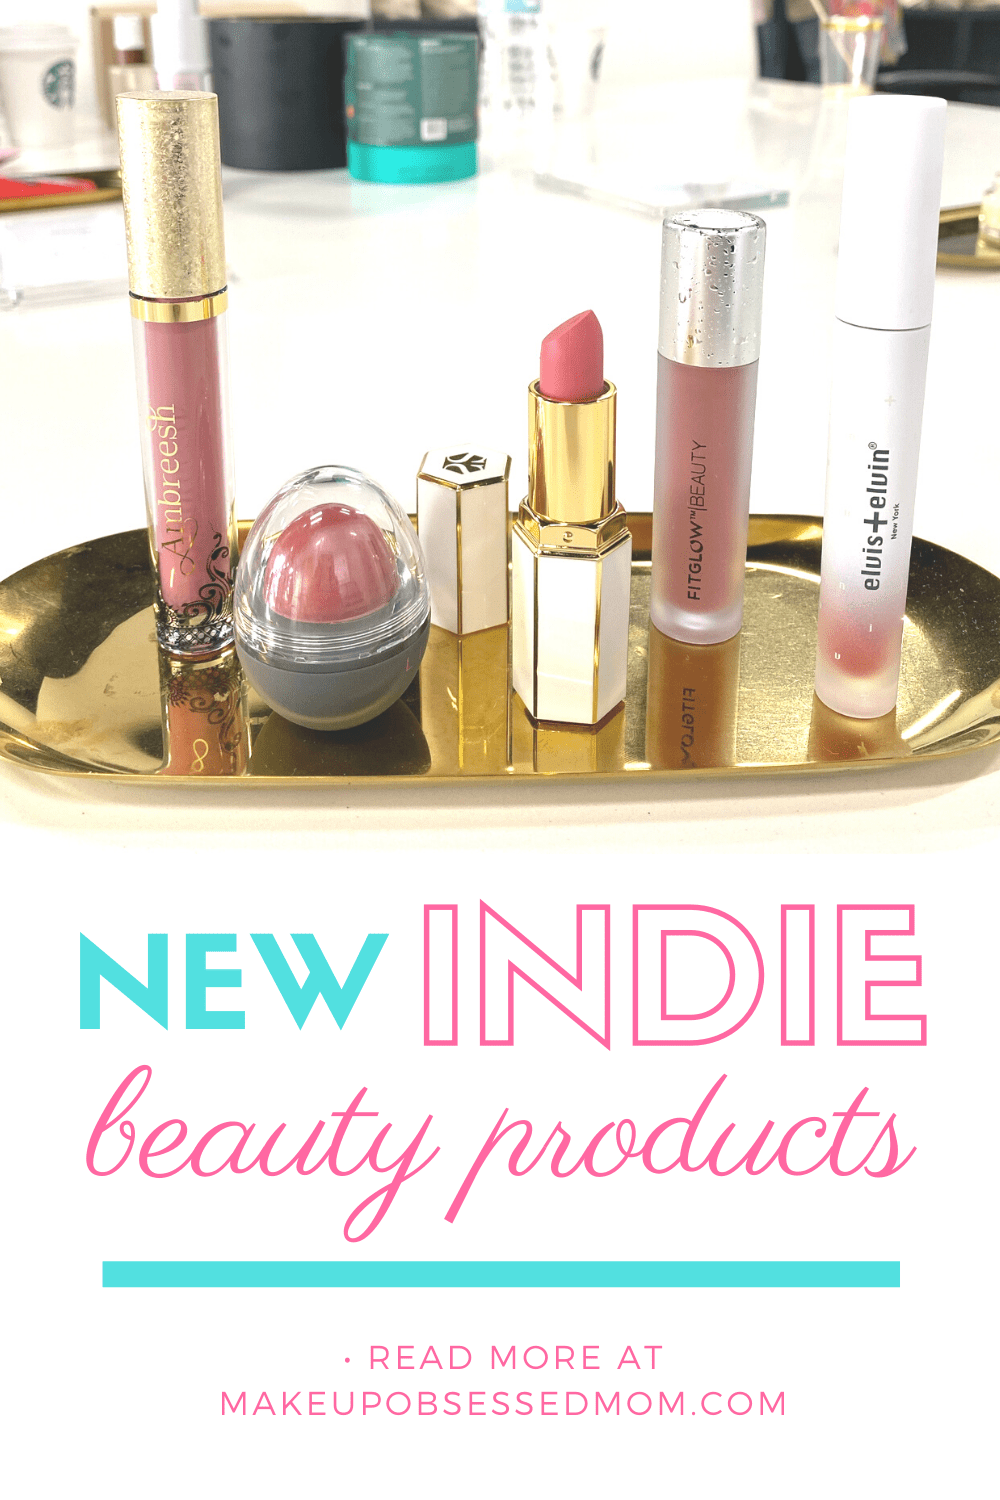 New Indie Beauty Products